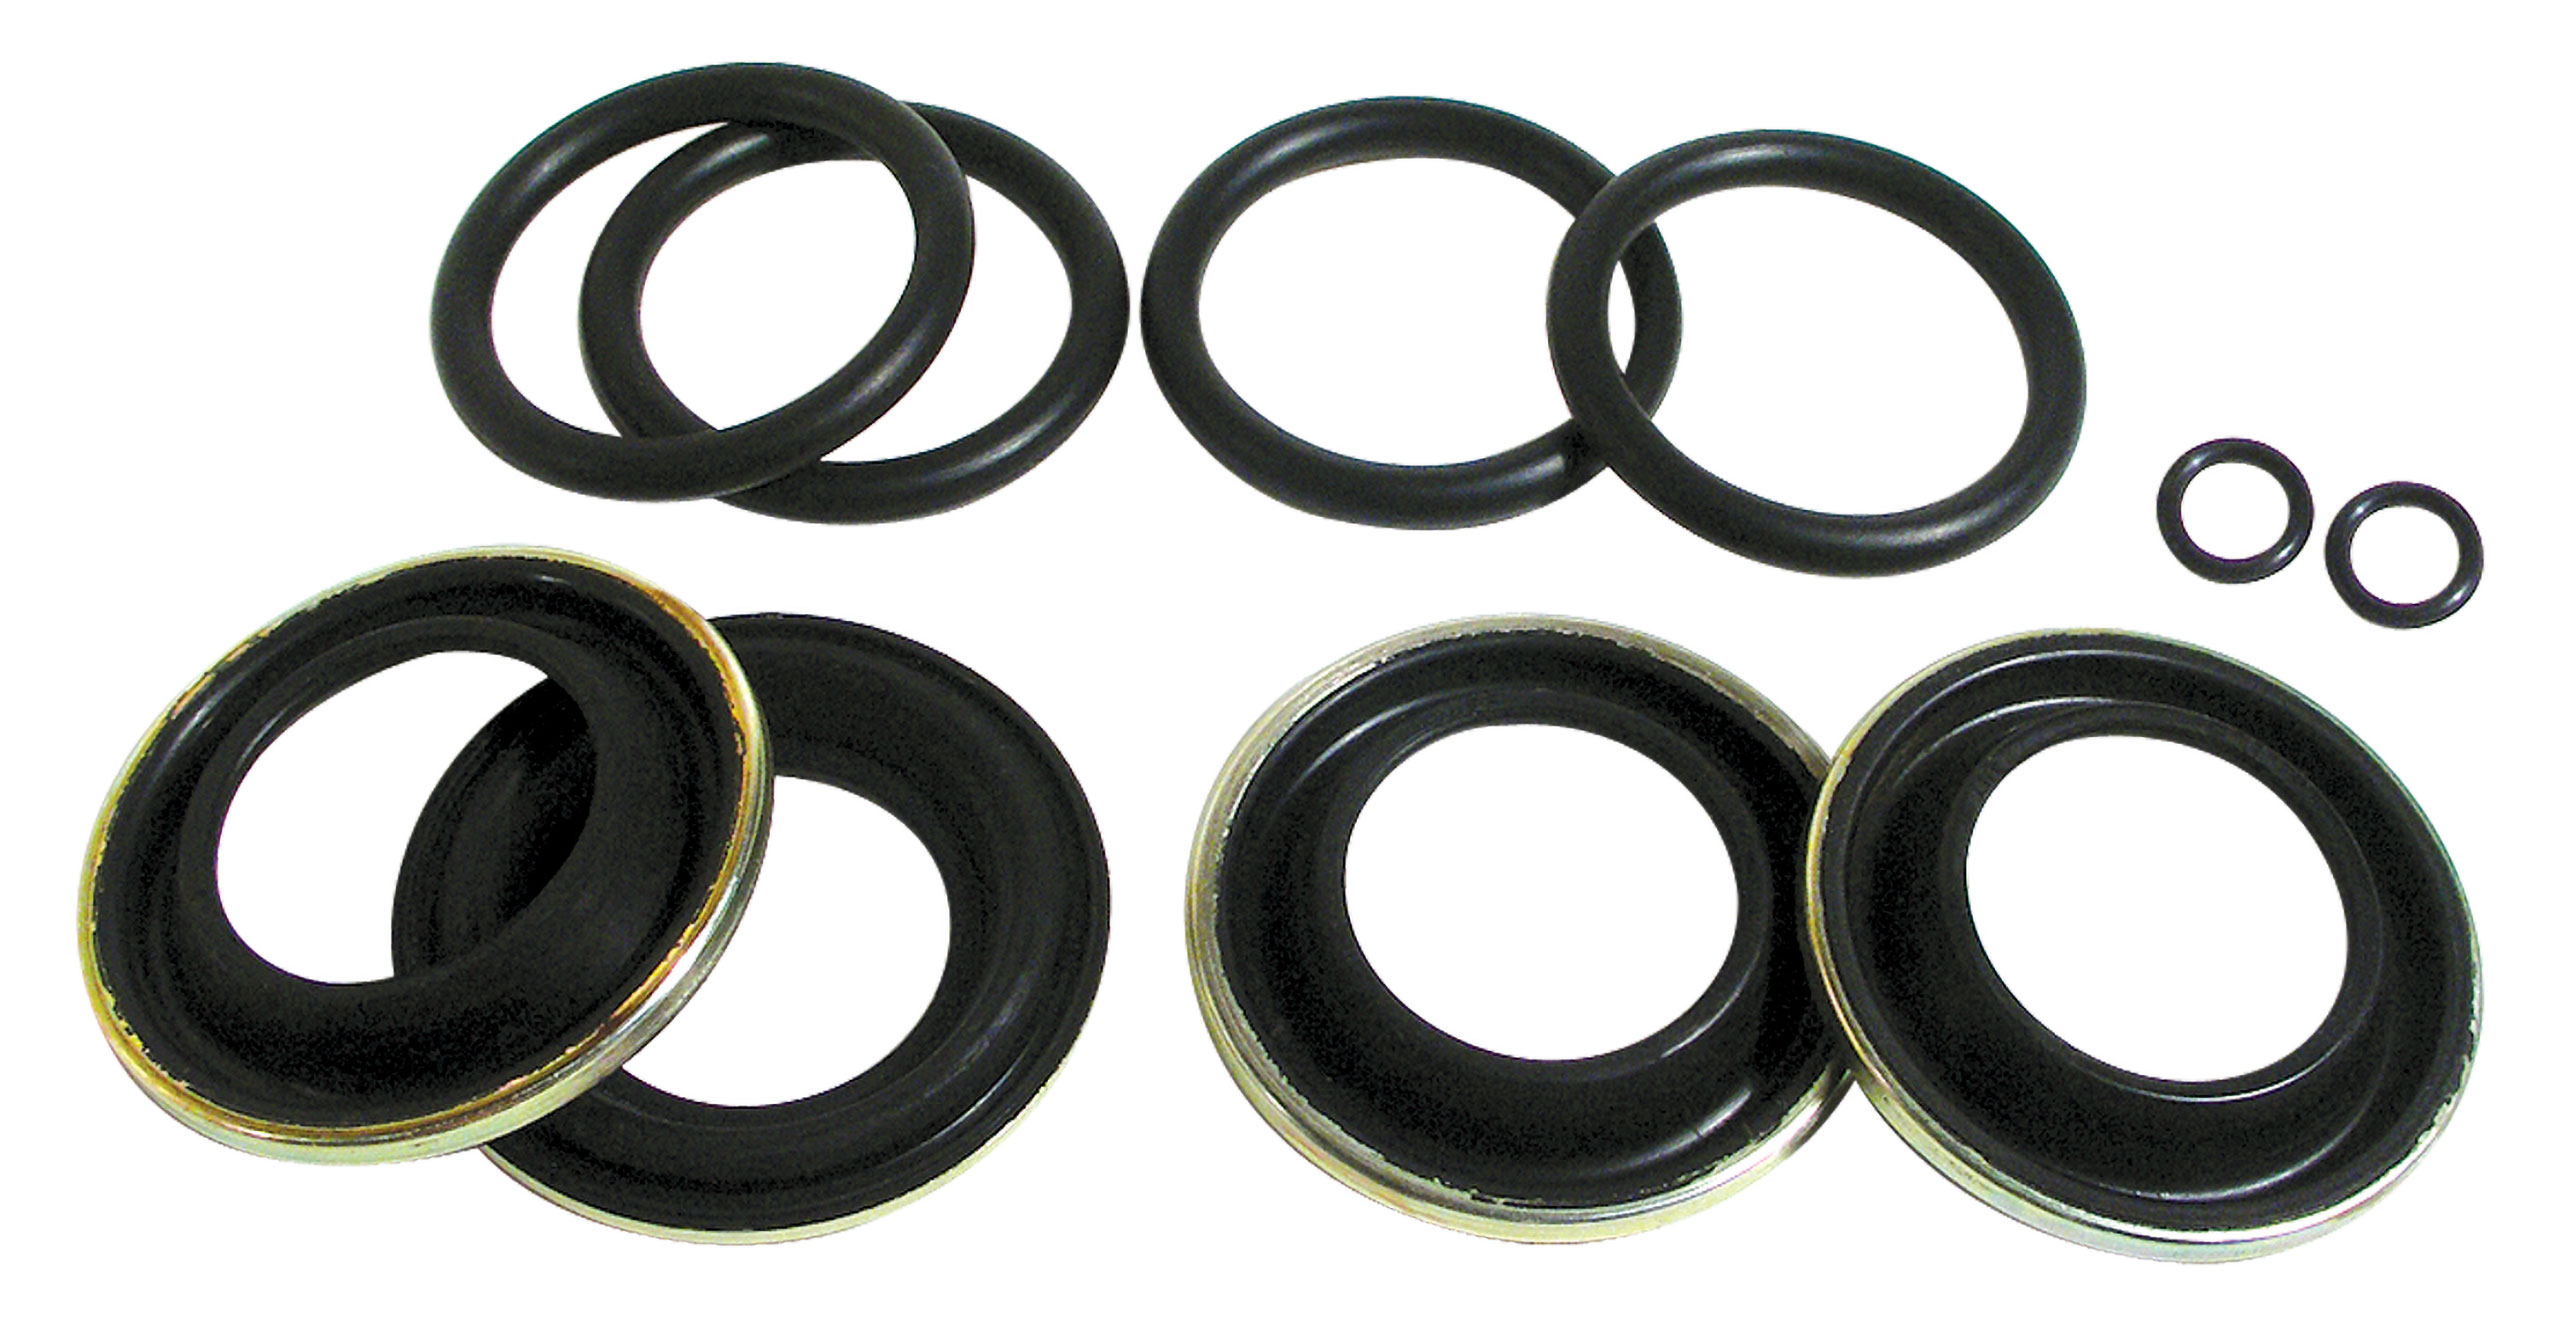 Corvette America 1965-1982 Chevrolet Corvette Caliper Seal Kit. Front O-Ring